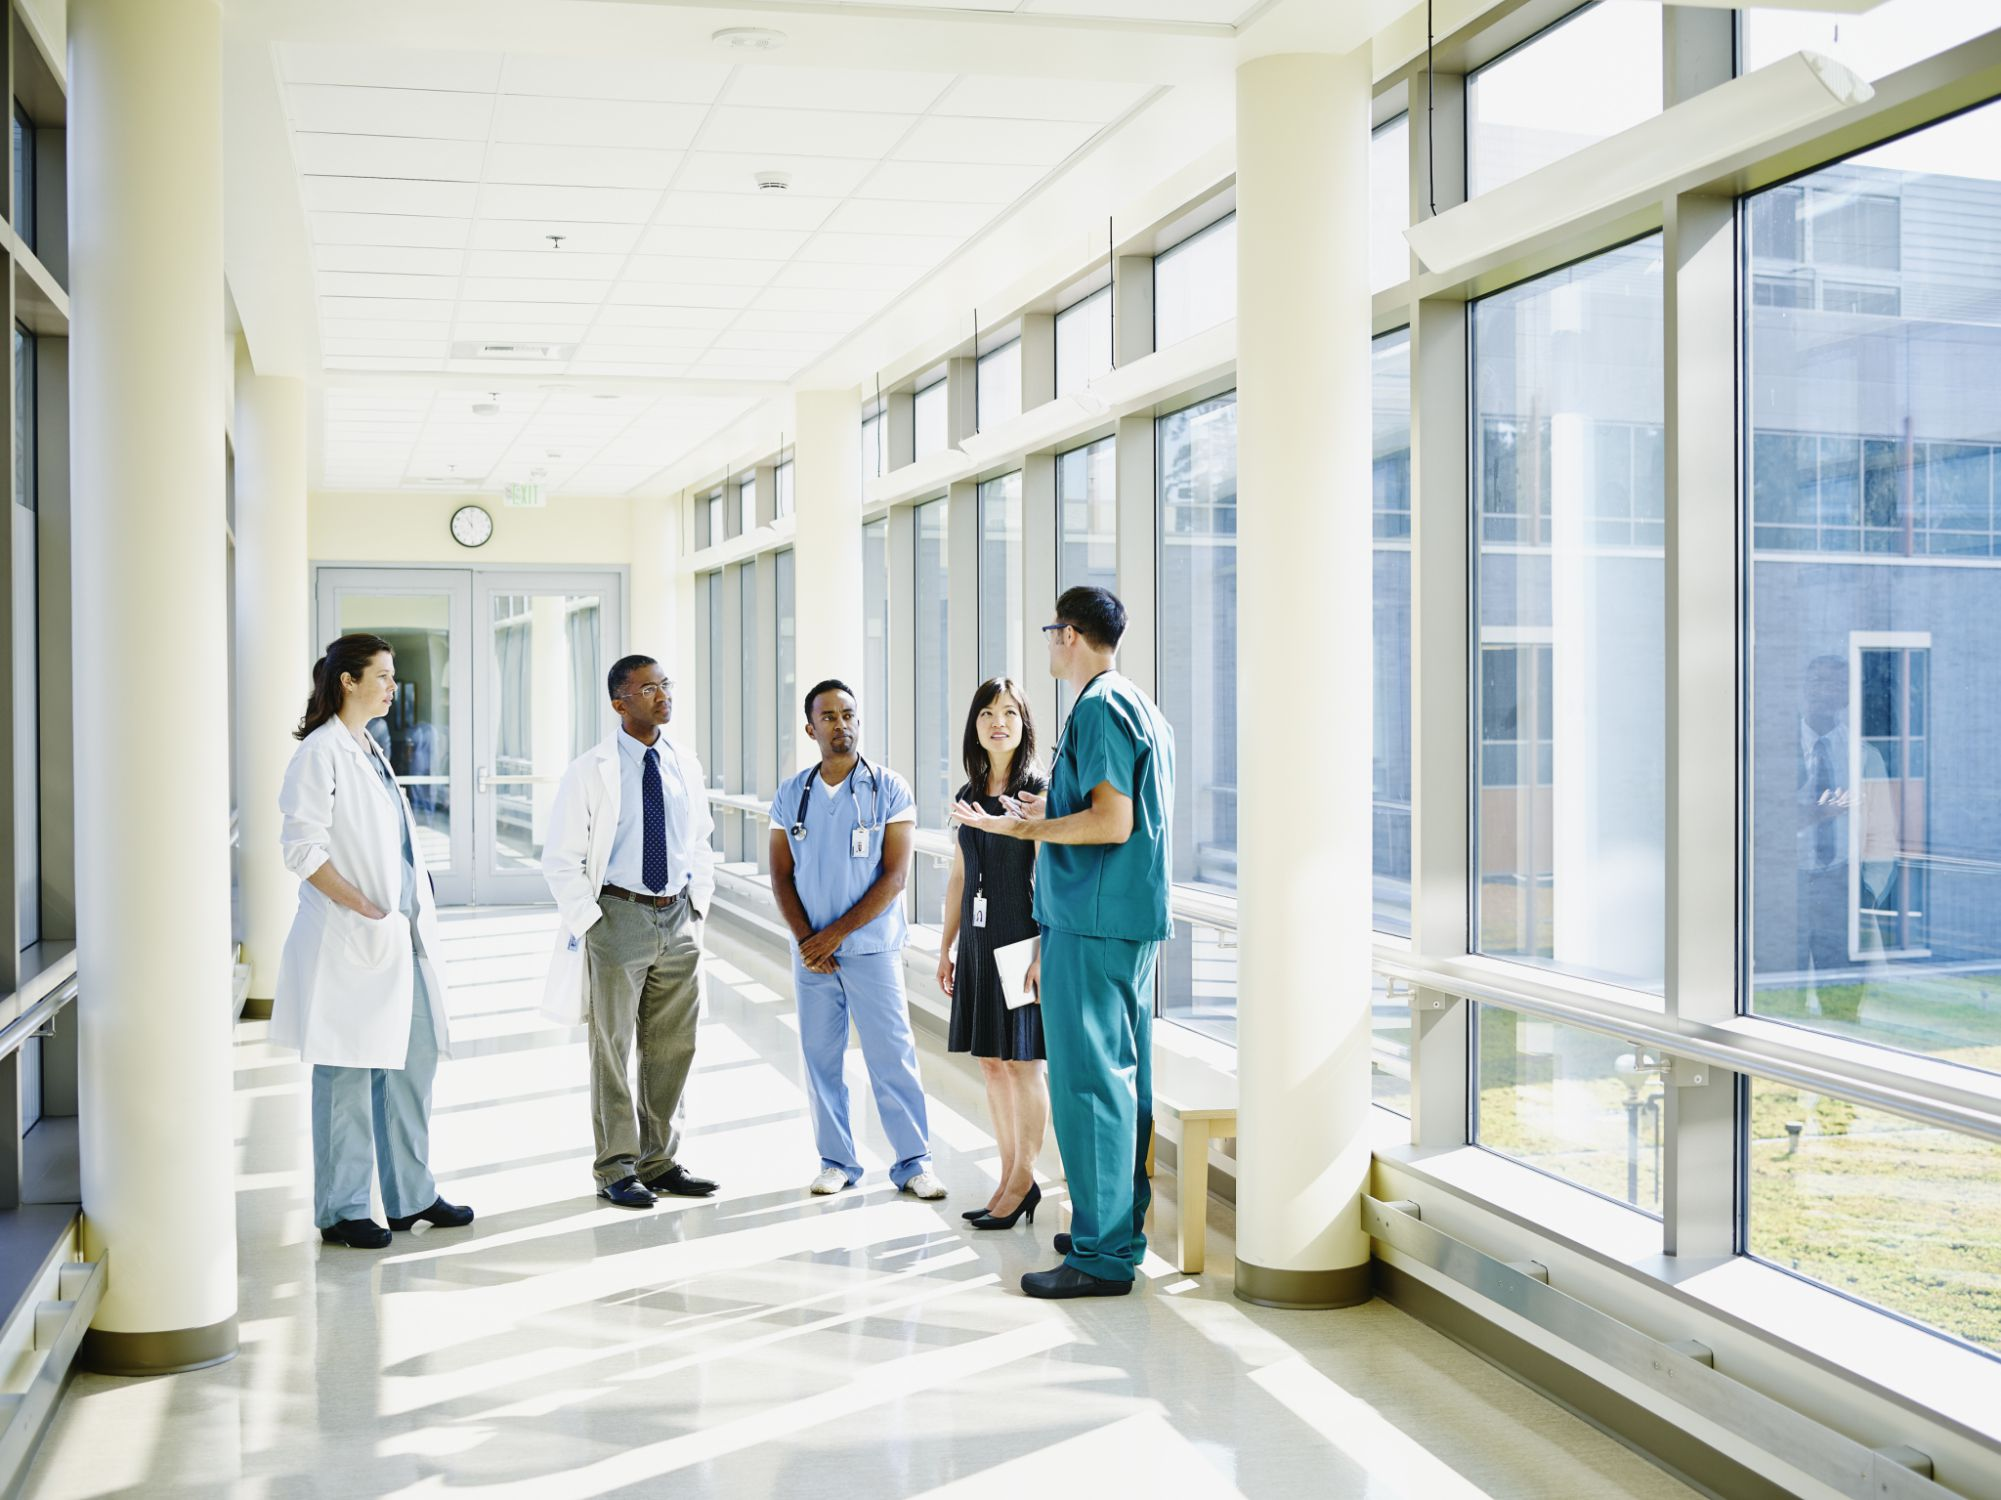 Pros and Cons of Academic Hospital Care